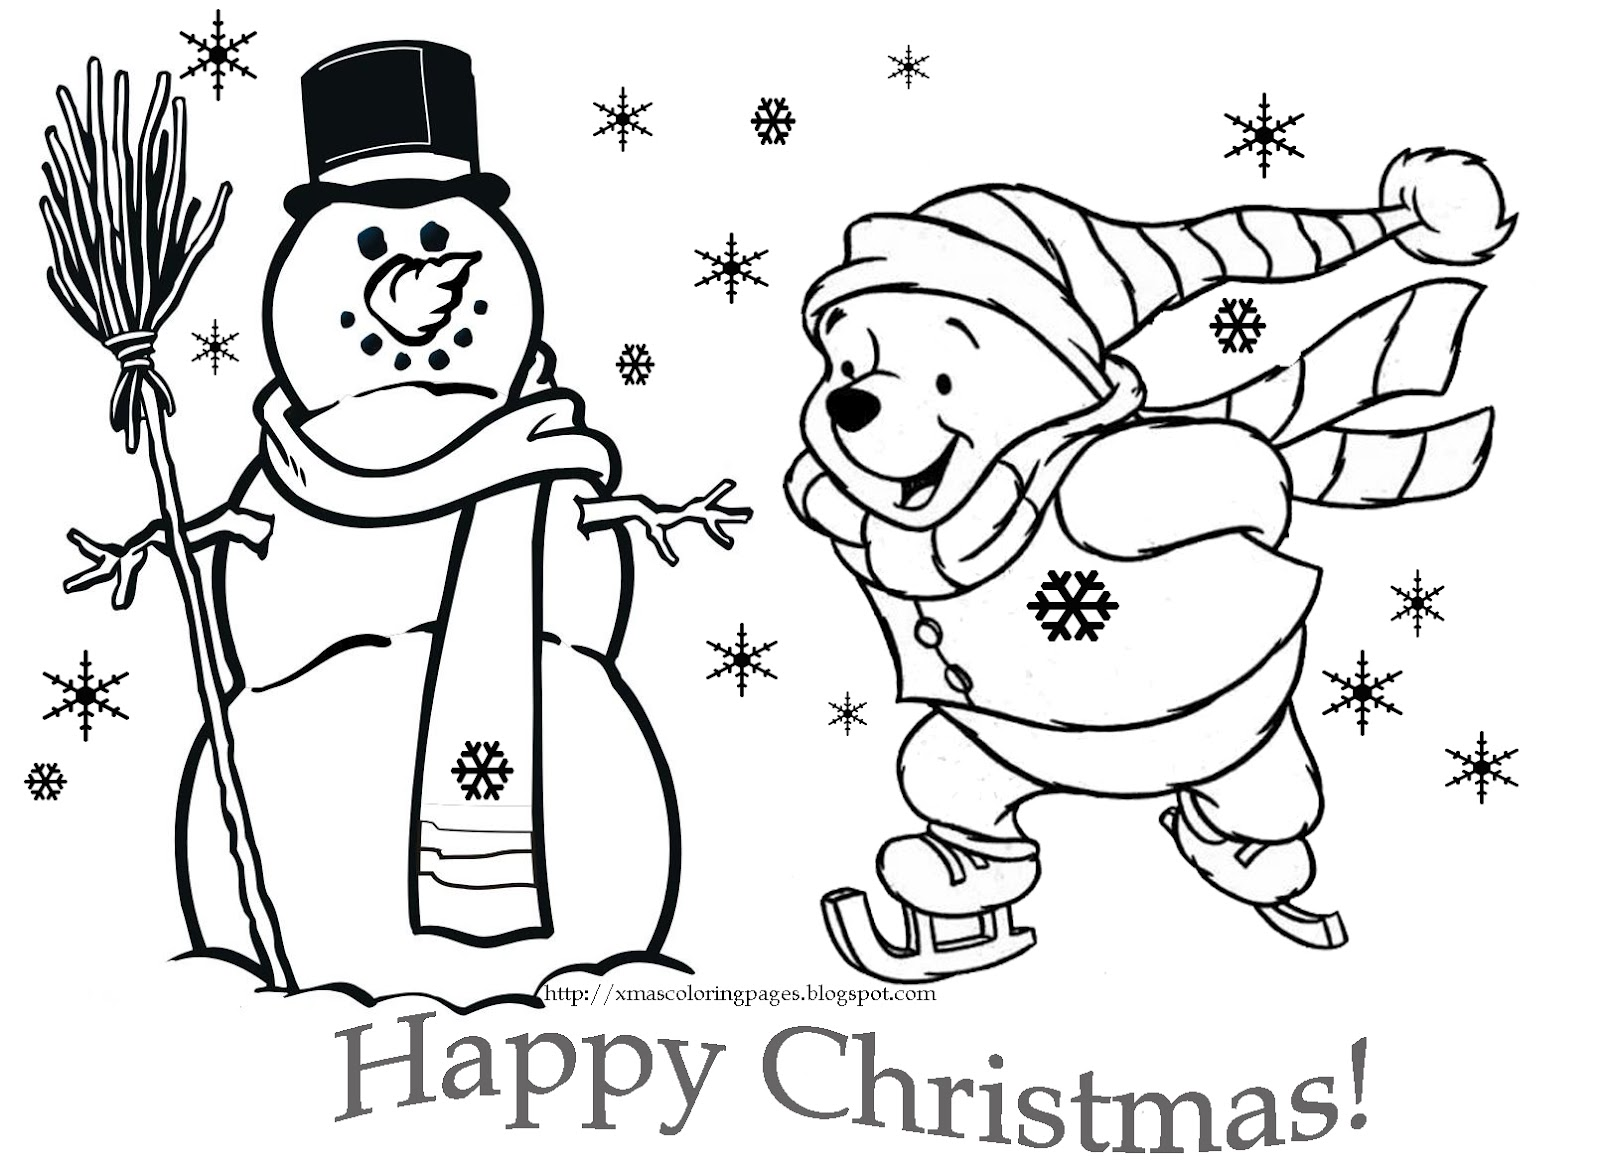 Free Disney Christmas Coloring Sheets With DISNEY COLORING PAGES